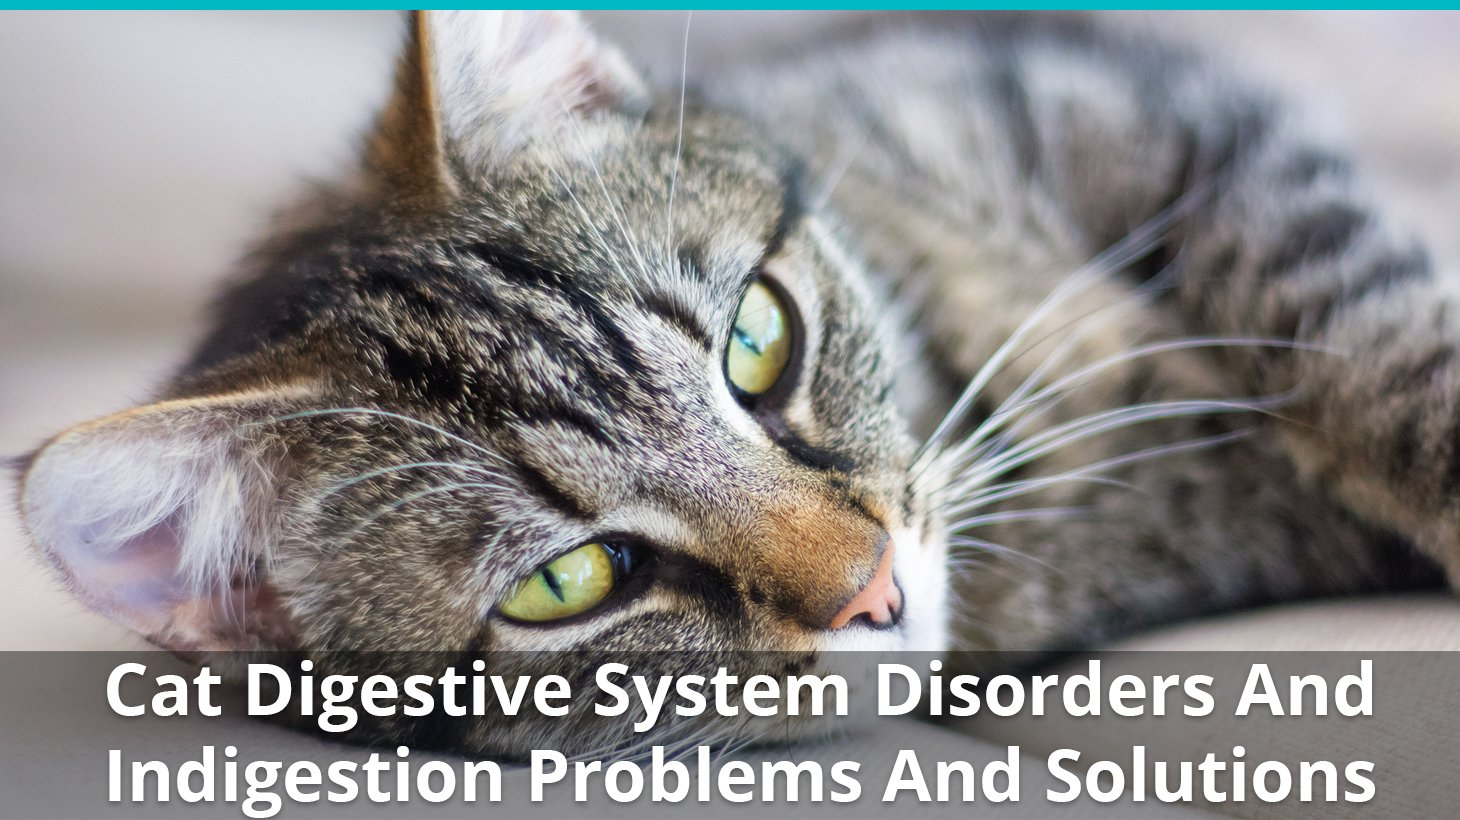 Cat Digestive System Disorders And Indigestion Problems